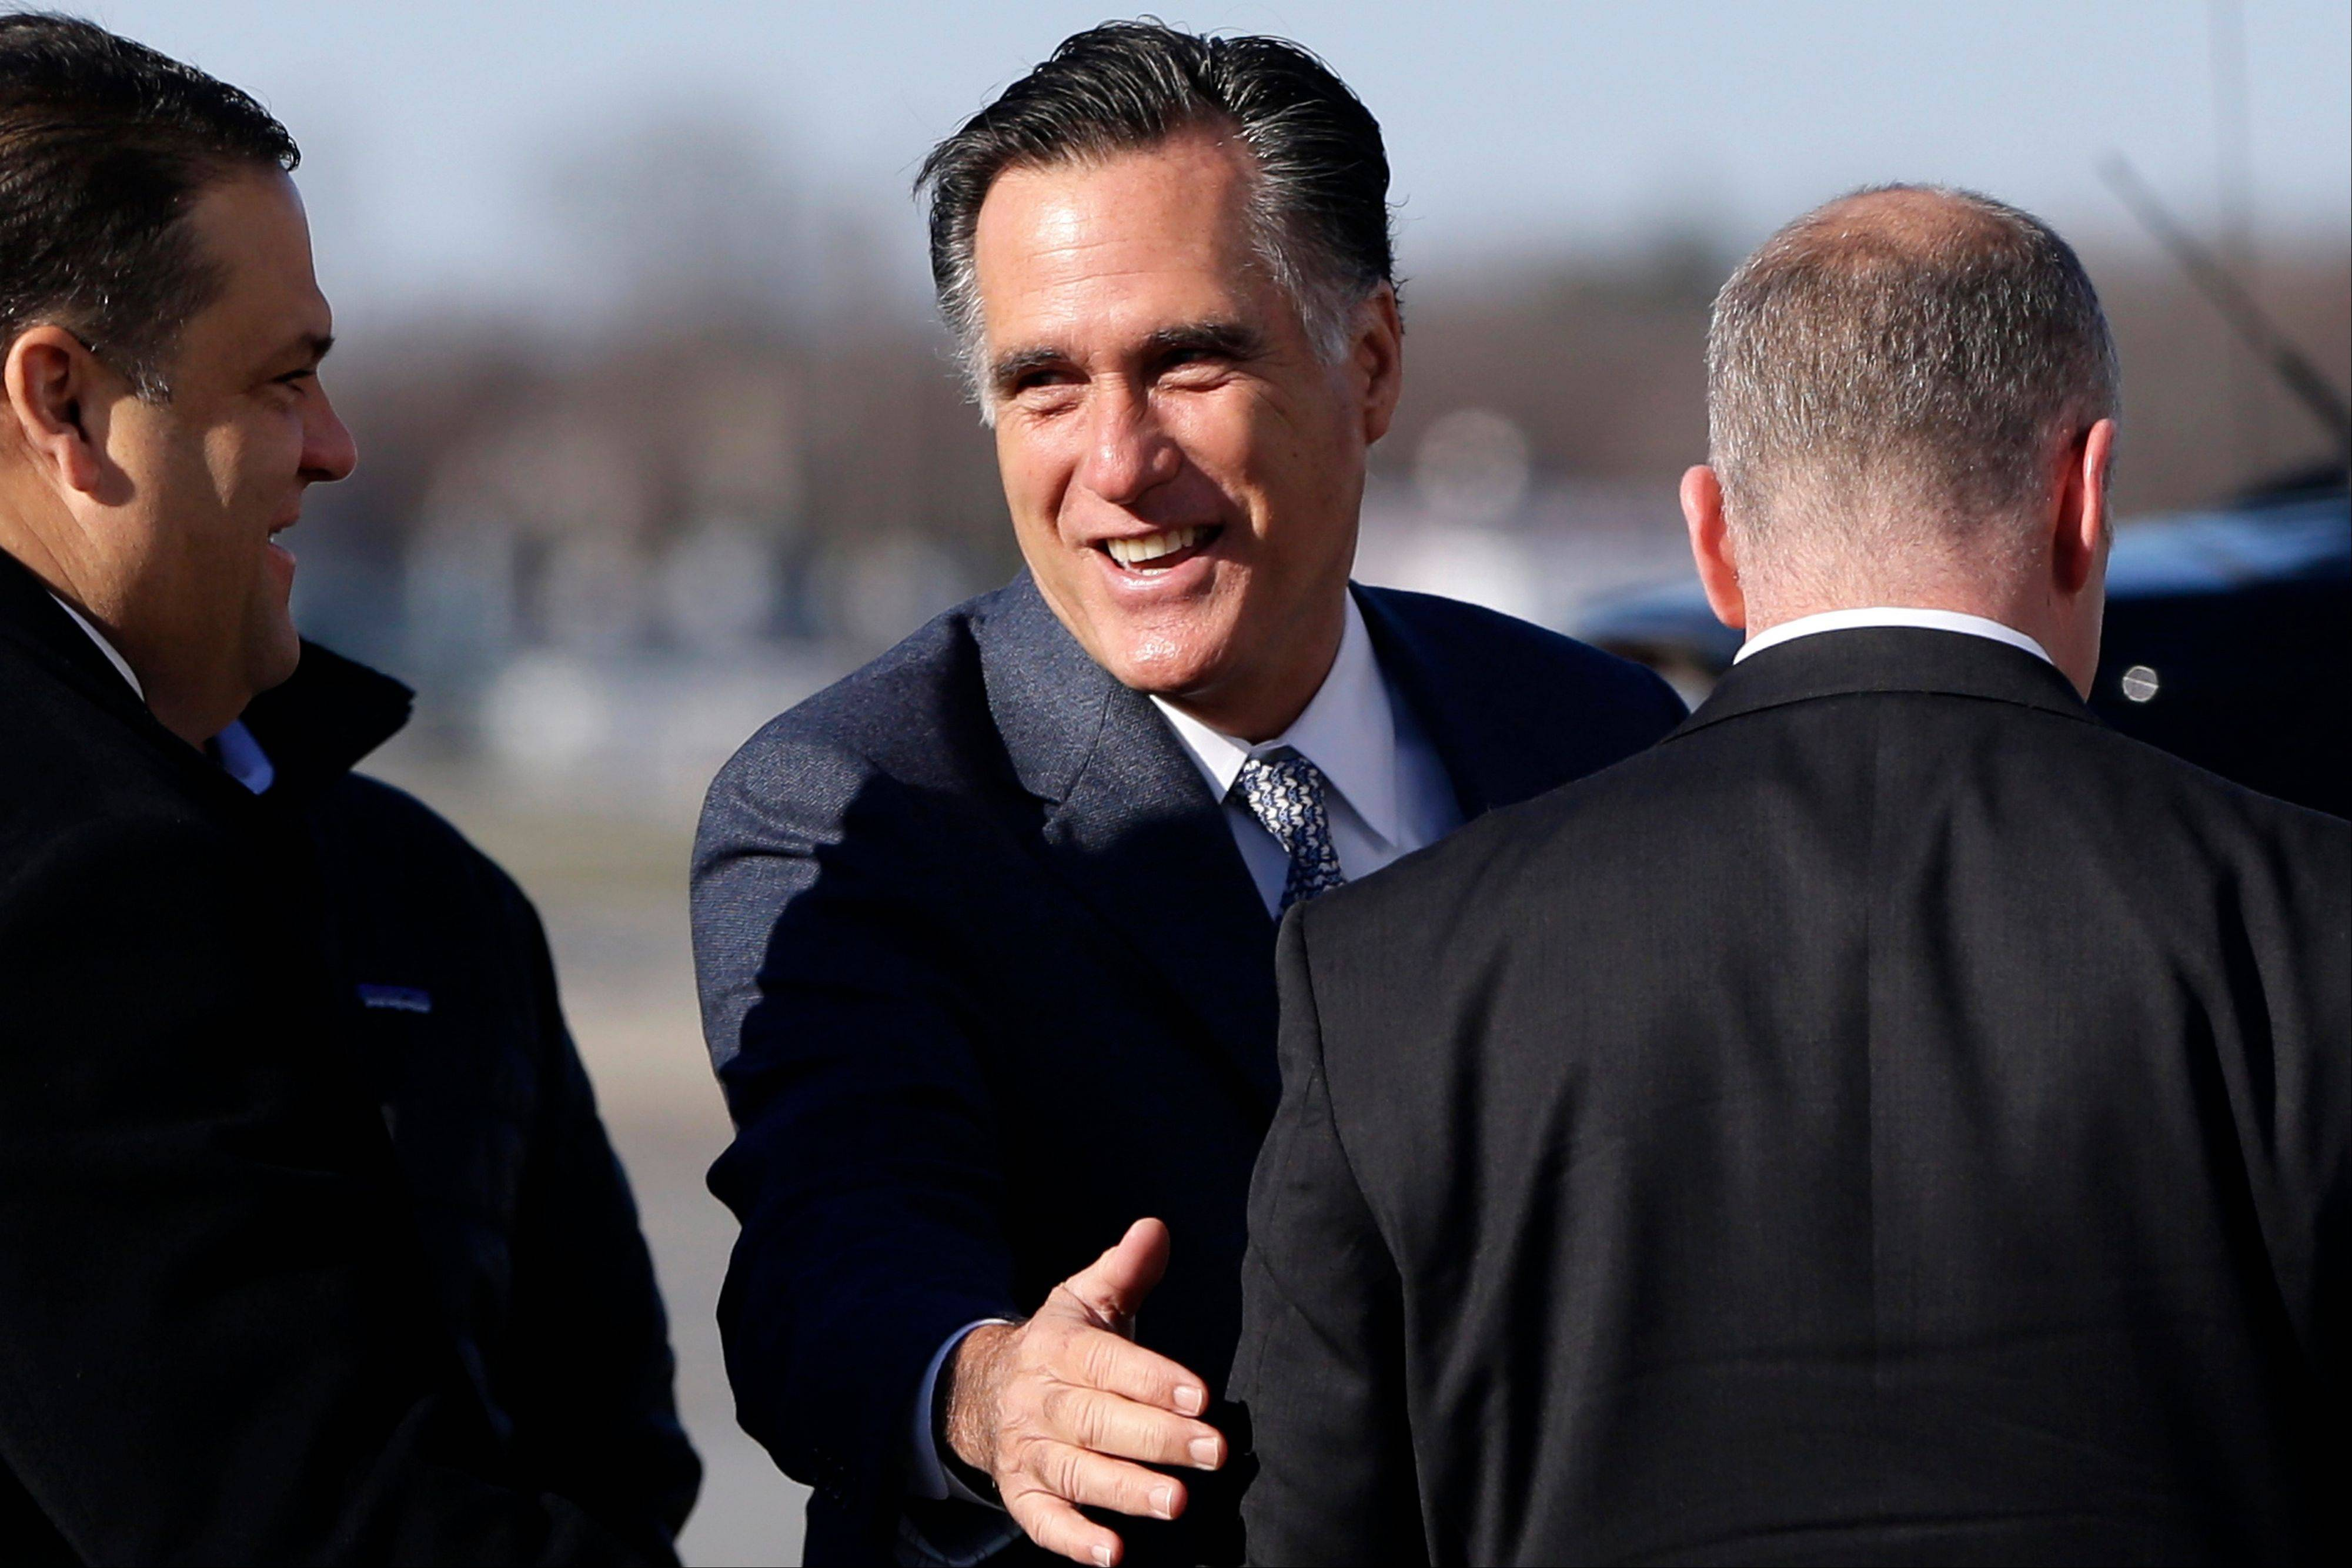 Republican presidential candidate, former Massachusetts Gov. Mitt Romney smiles as he speaks to a U.S. Secret Service agent before boarding his plane in Bedford Mass., for Cleveland, Ohio, Tuesday, Nov. 6, 2012.